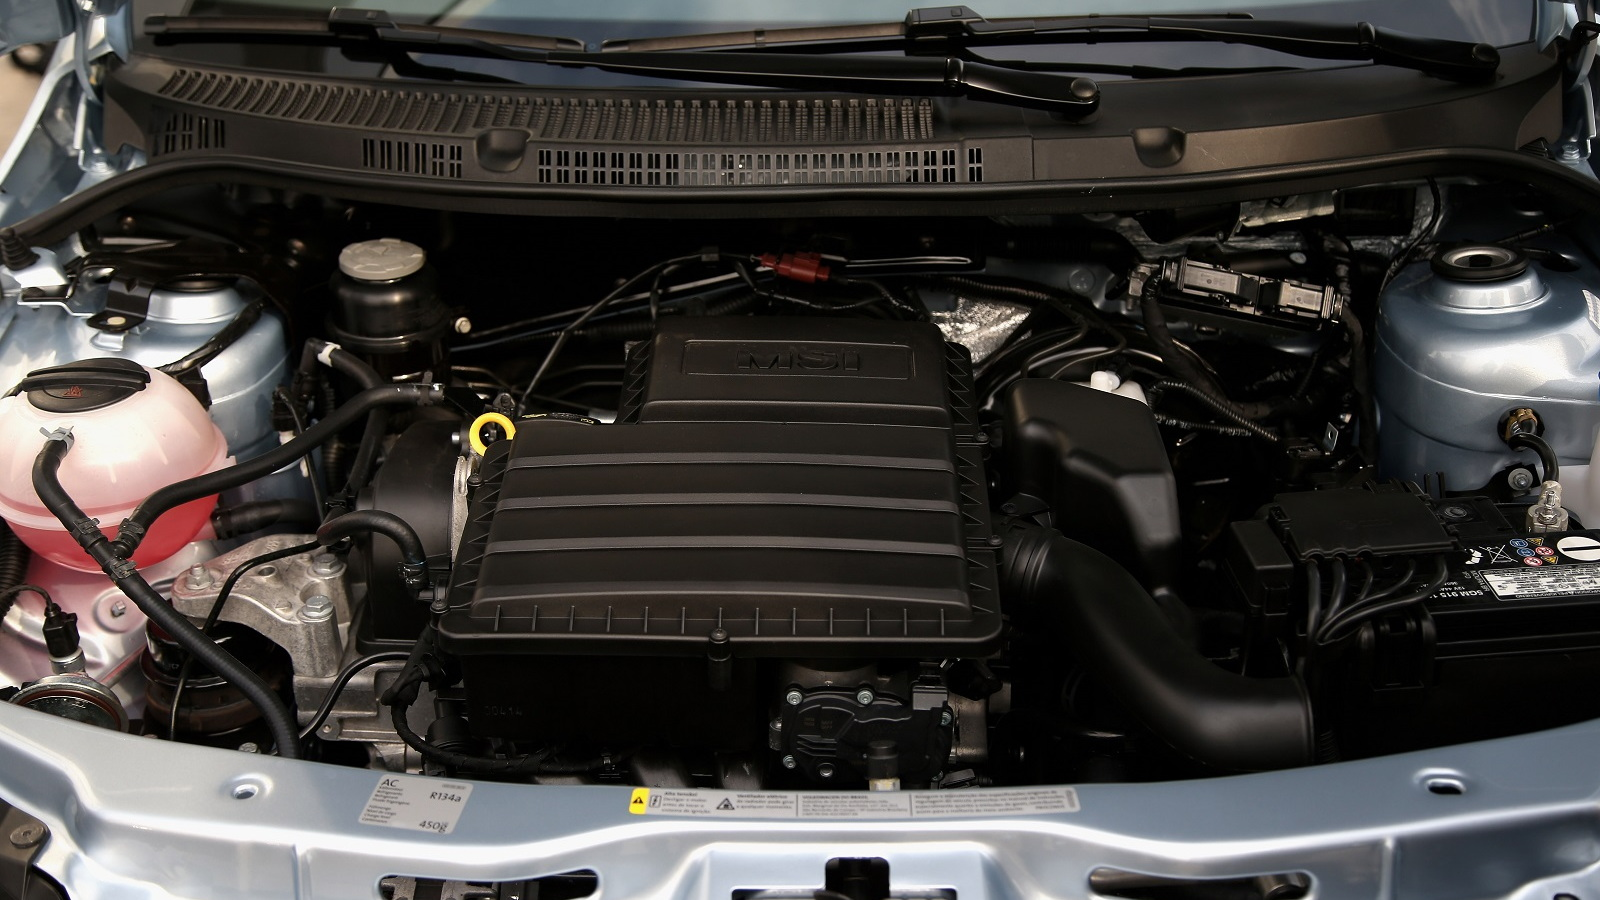 Engine compartment of Volkswagen Saveiro, Brazilian flex-fuel vehicle